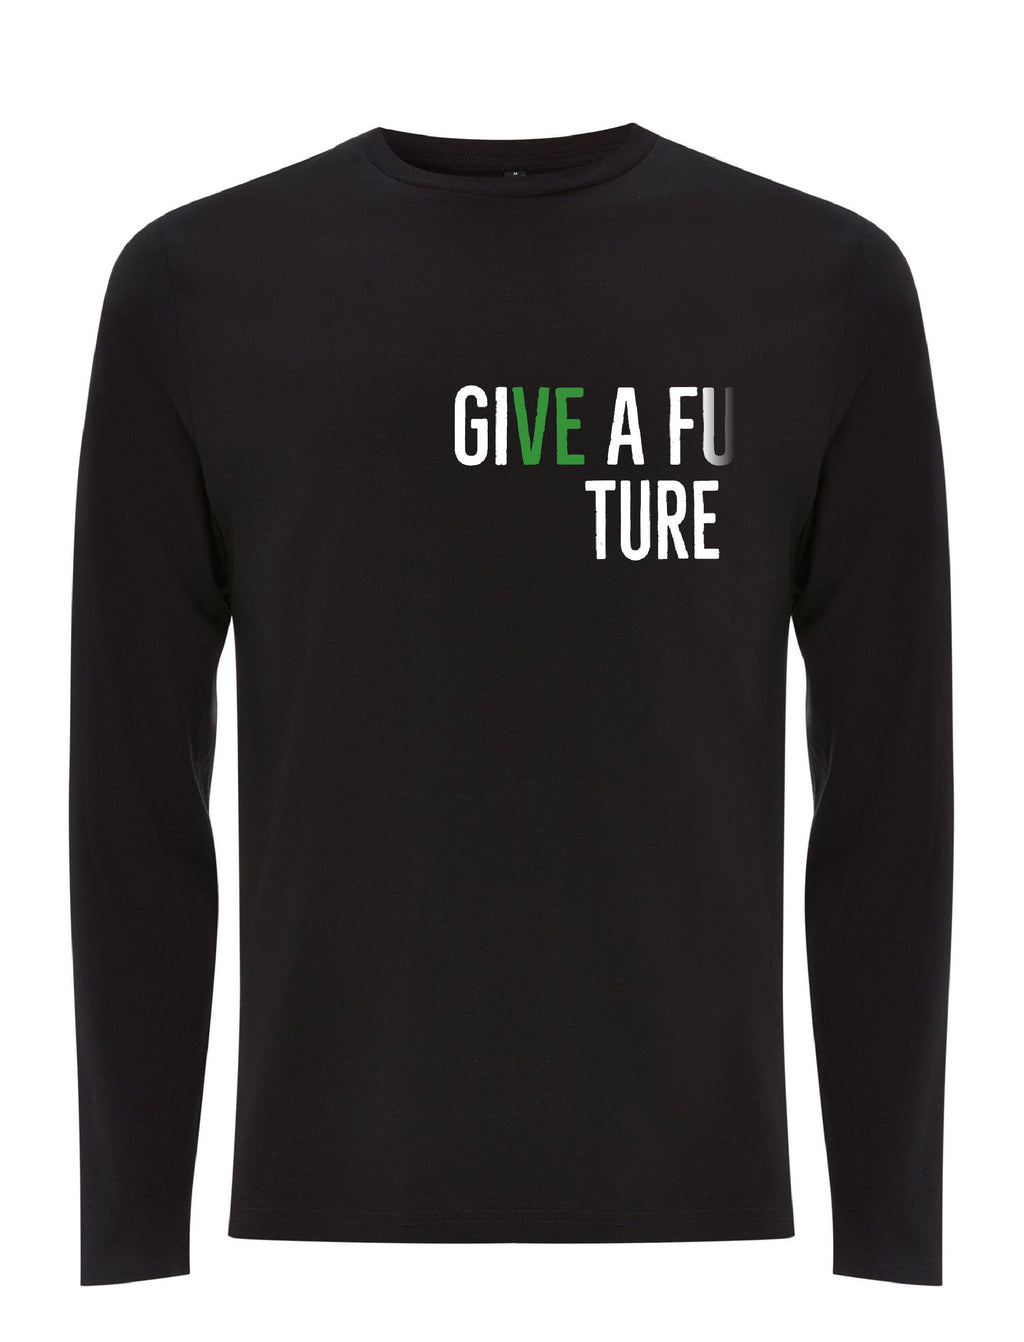 GIVE A FUTURE Men's Long Sleeve Organic Cotton T-shirt